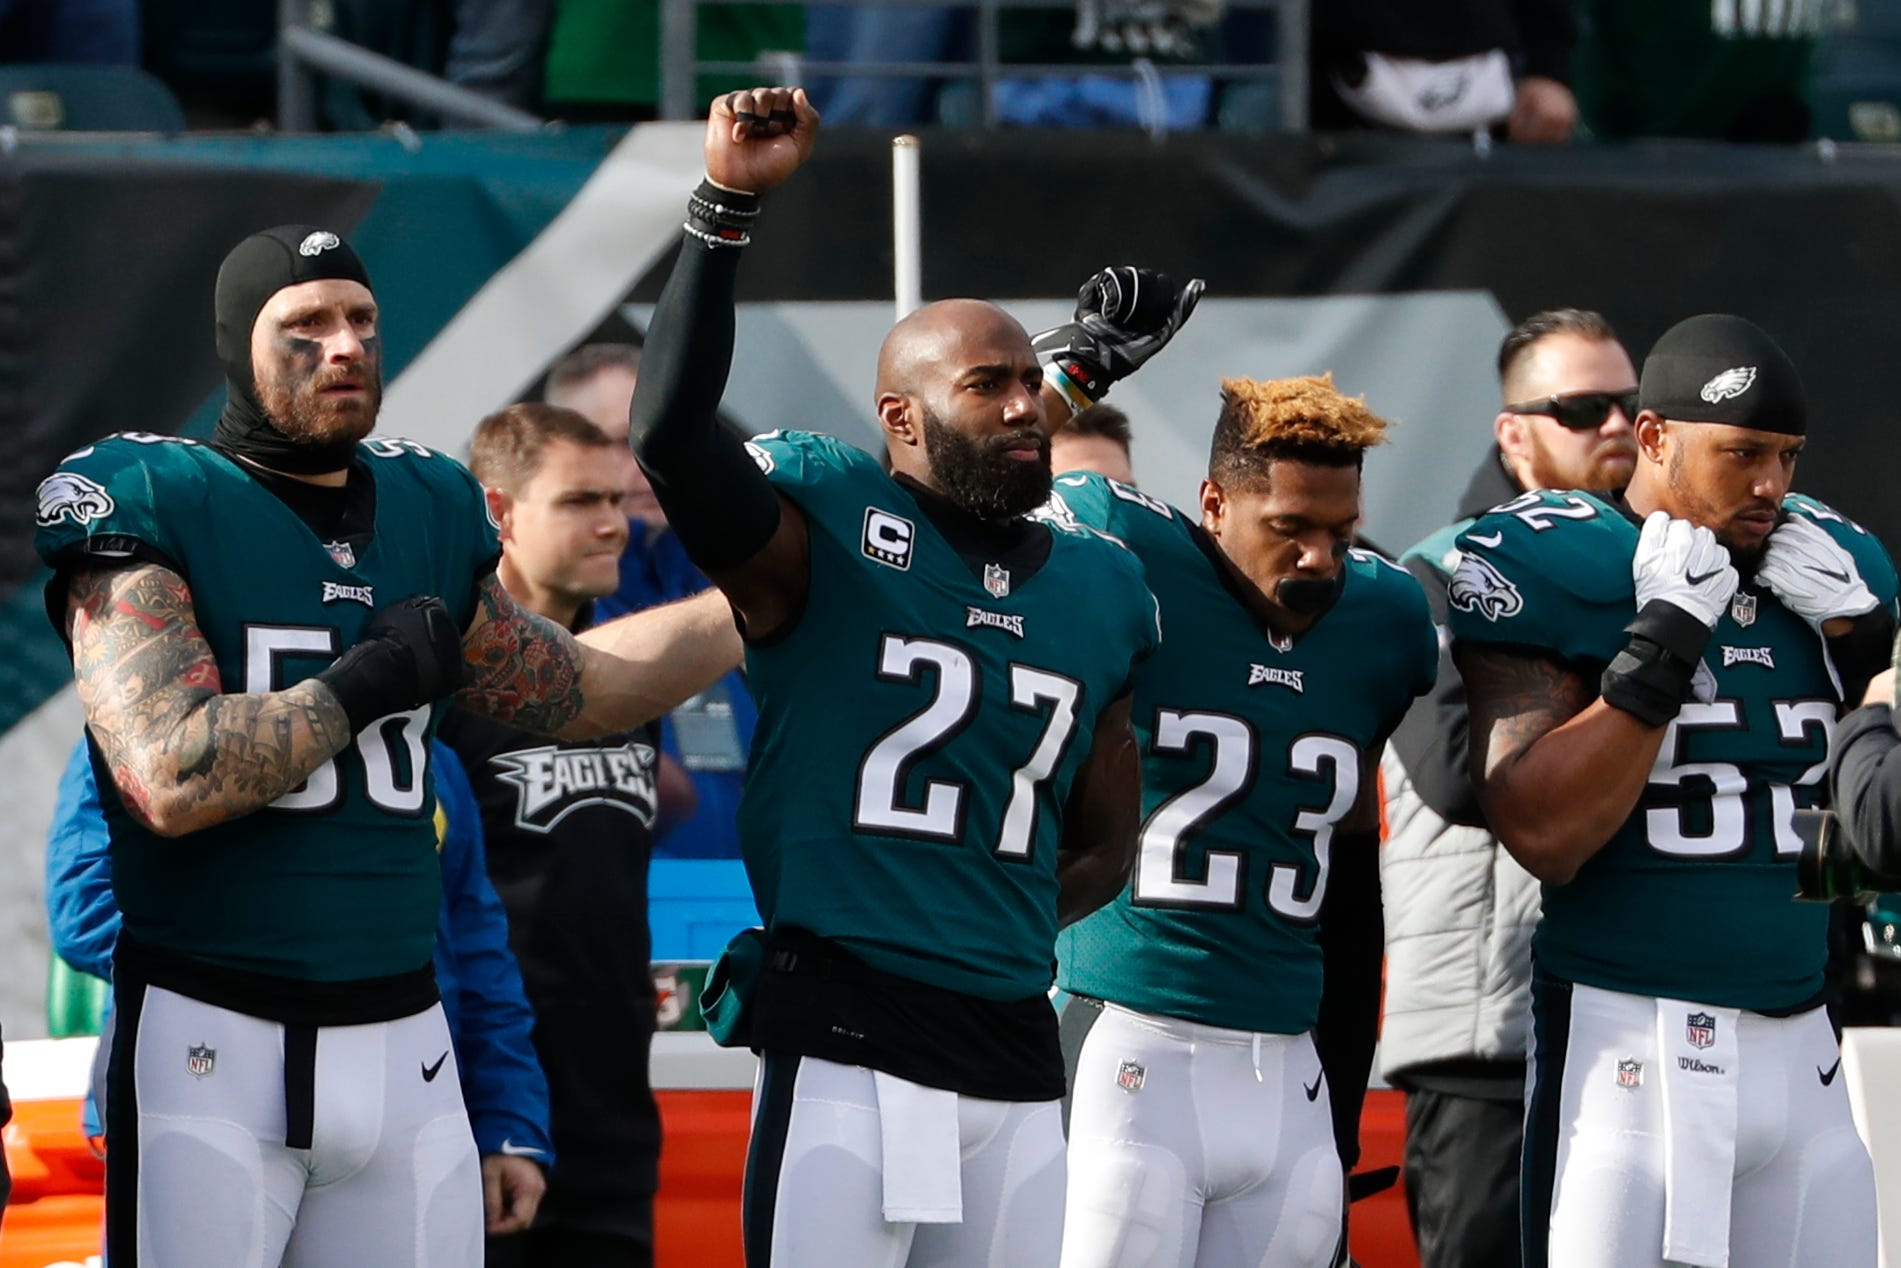 Listen up, America: Malcolm Jenkins and NFL players won't let their message be drowned out